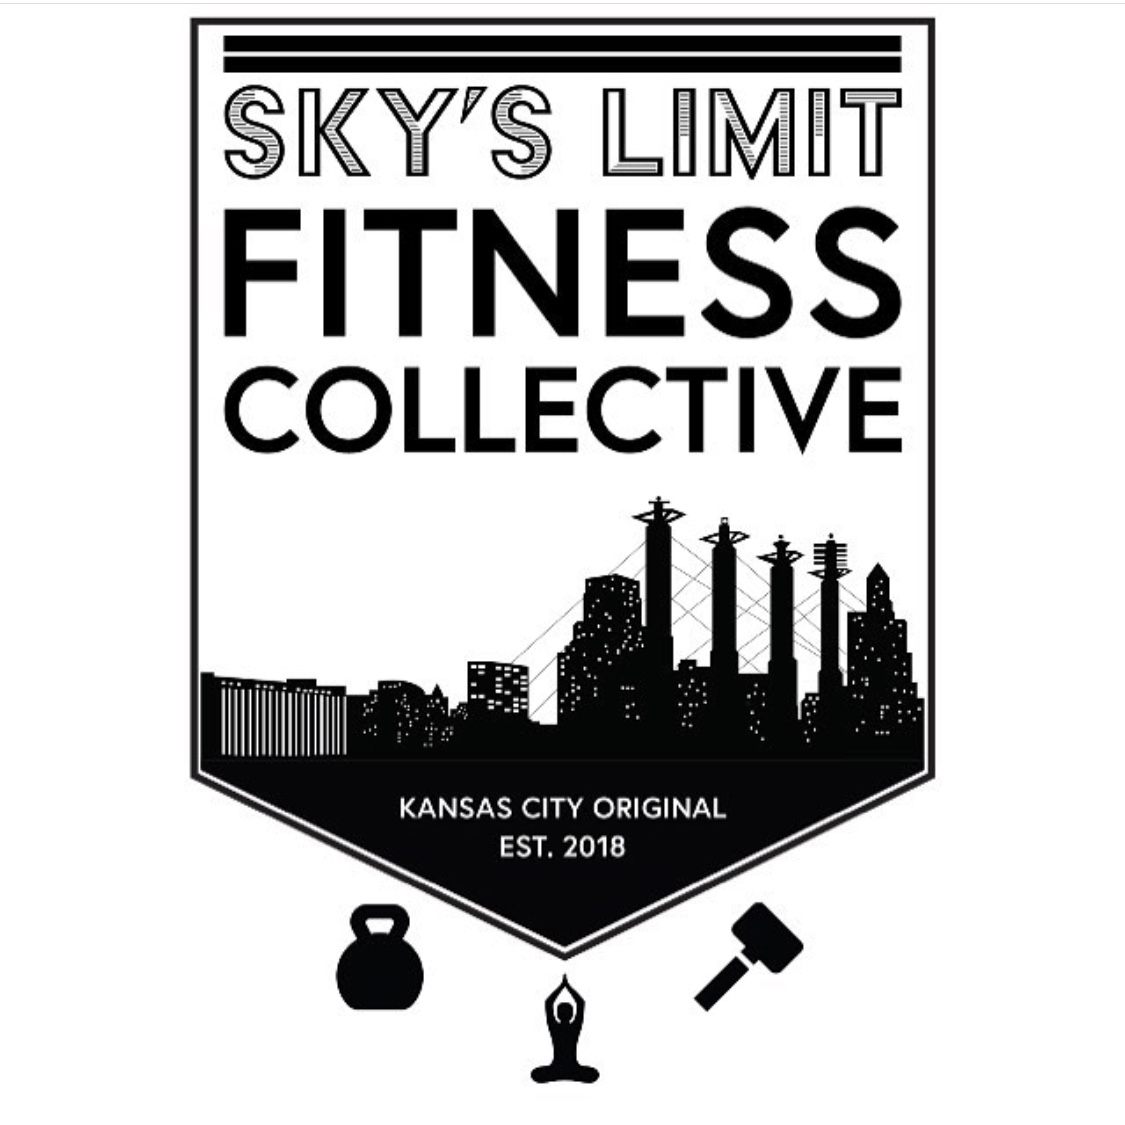 kansas-city-fitness-collective.jpg